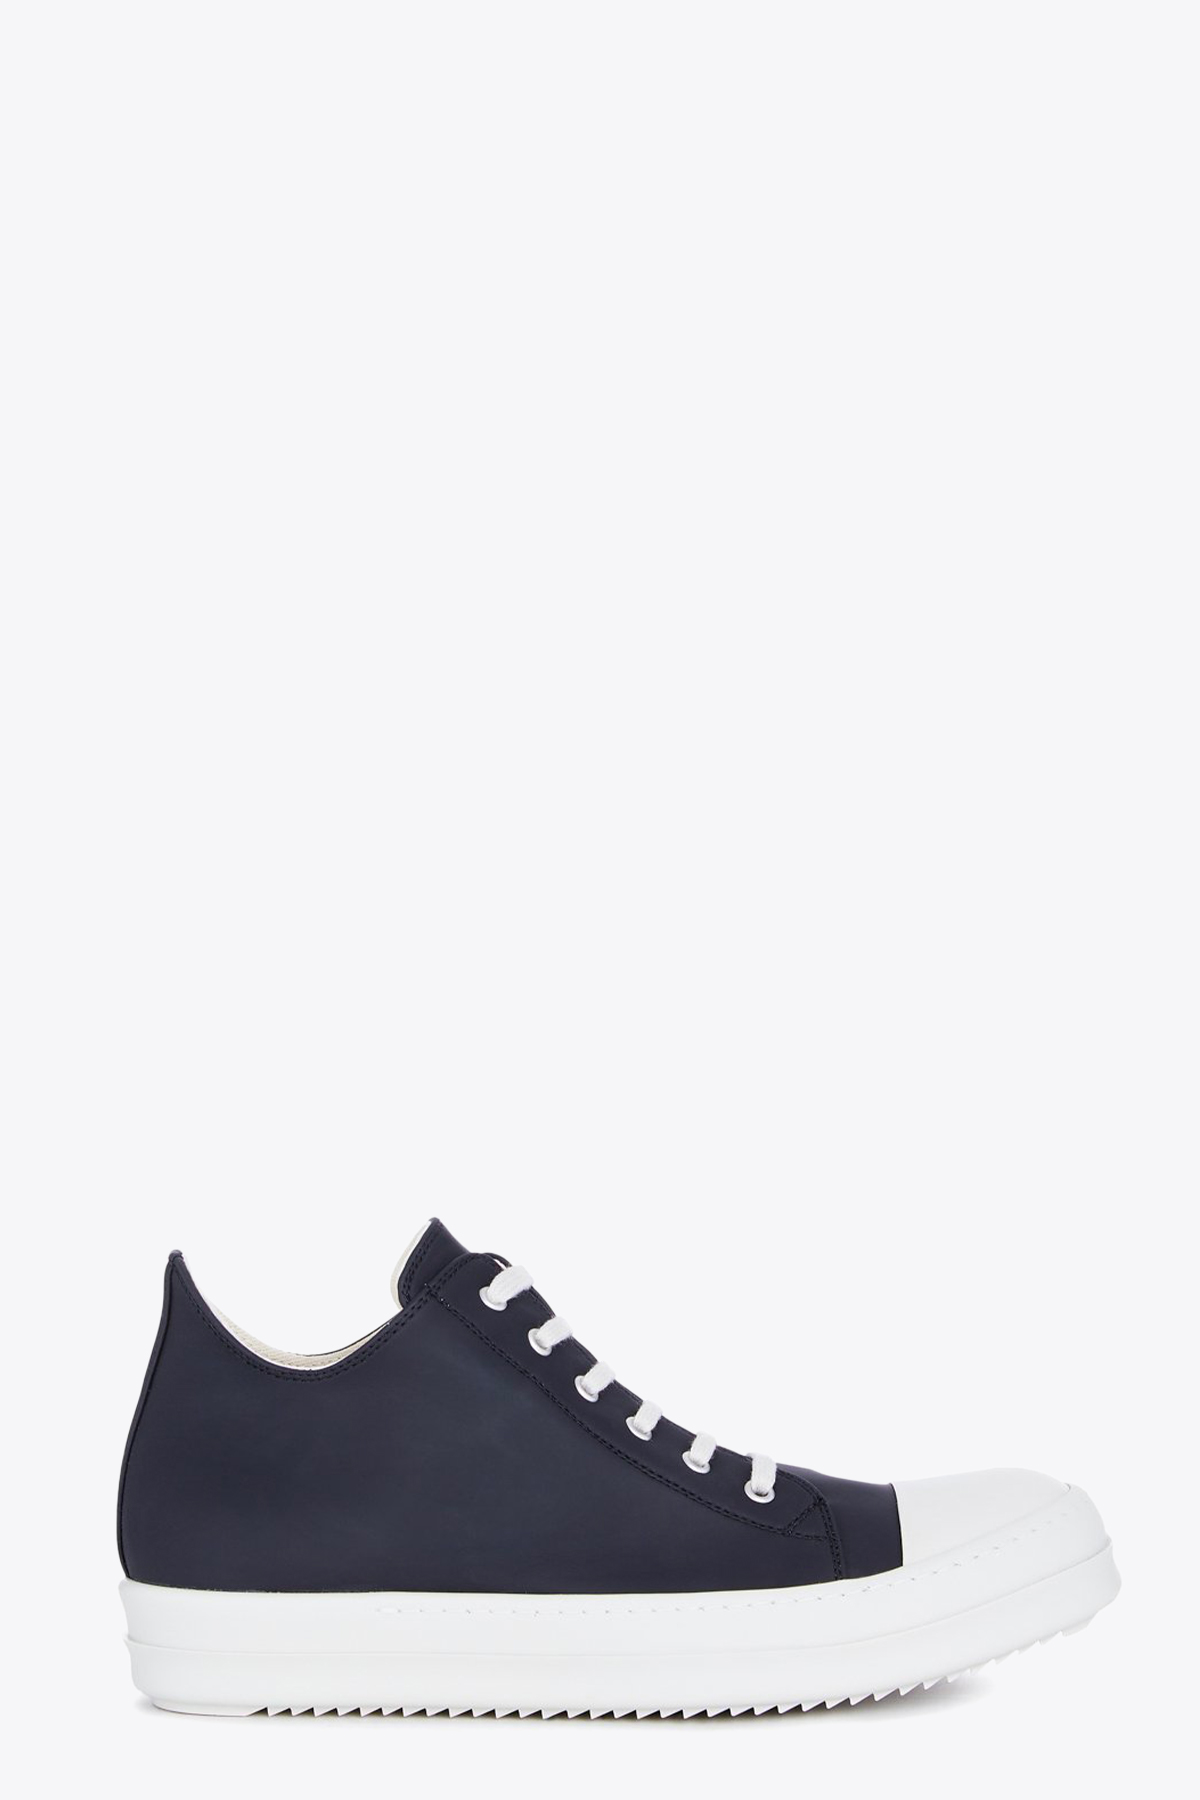 LACE UP LOW SNEAKERS RICK OWENS-DRKSHDW | 10000039 | DU20F1802 RUHP LOW SNEAKERS91